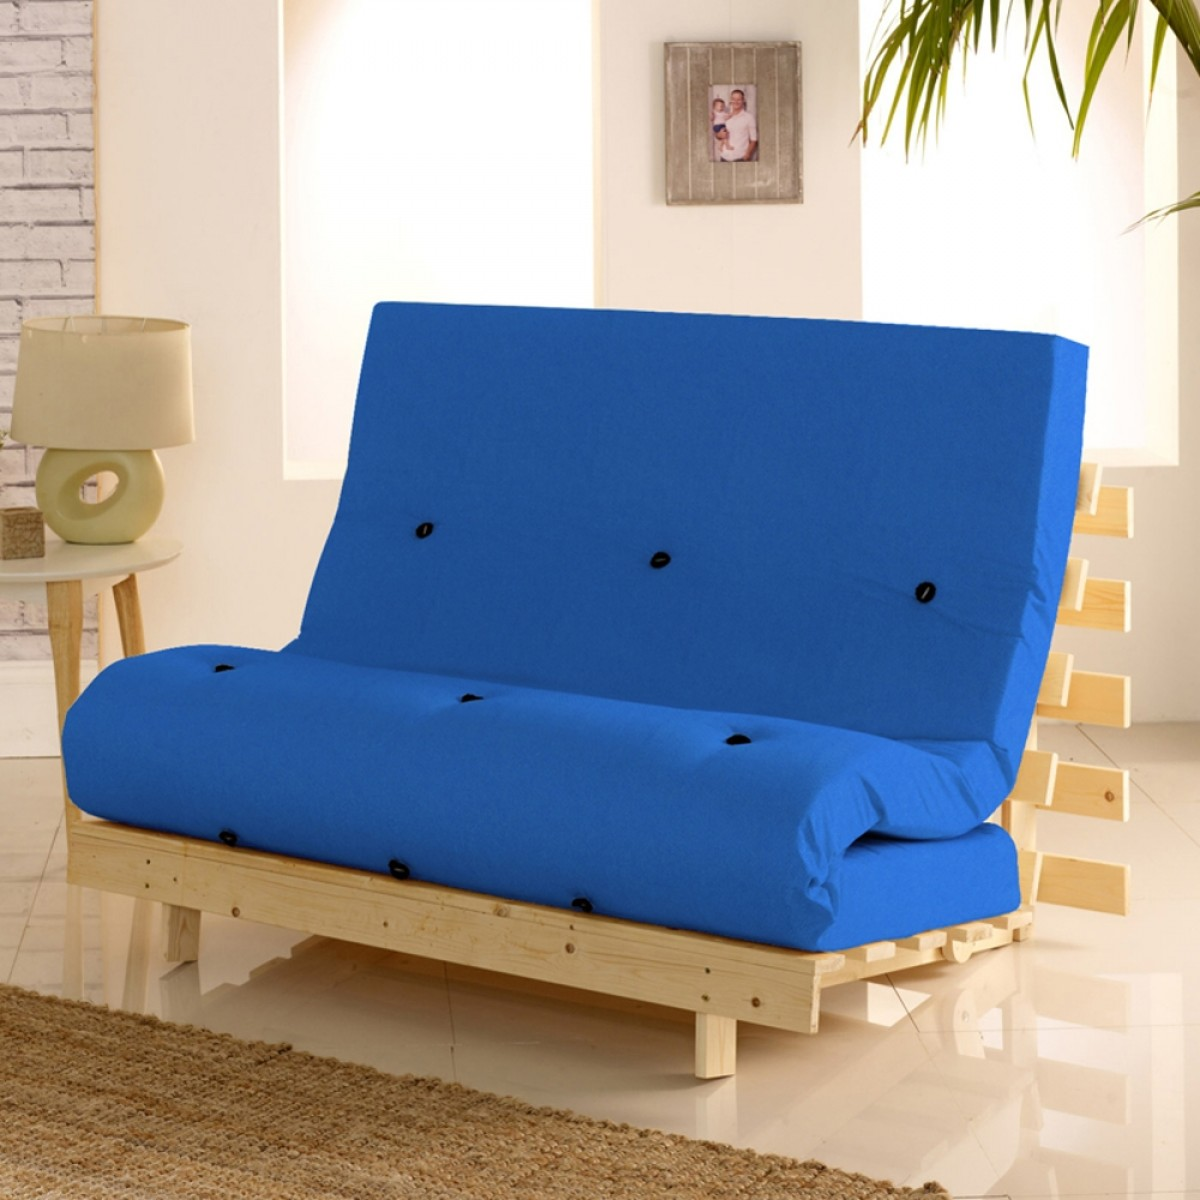 Metro Wooden Folding Guest Futon Blue Mattress